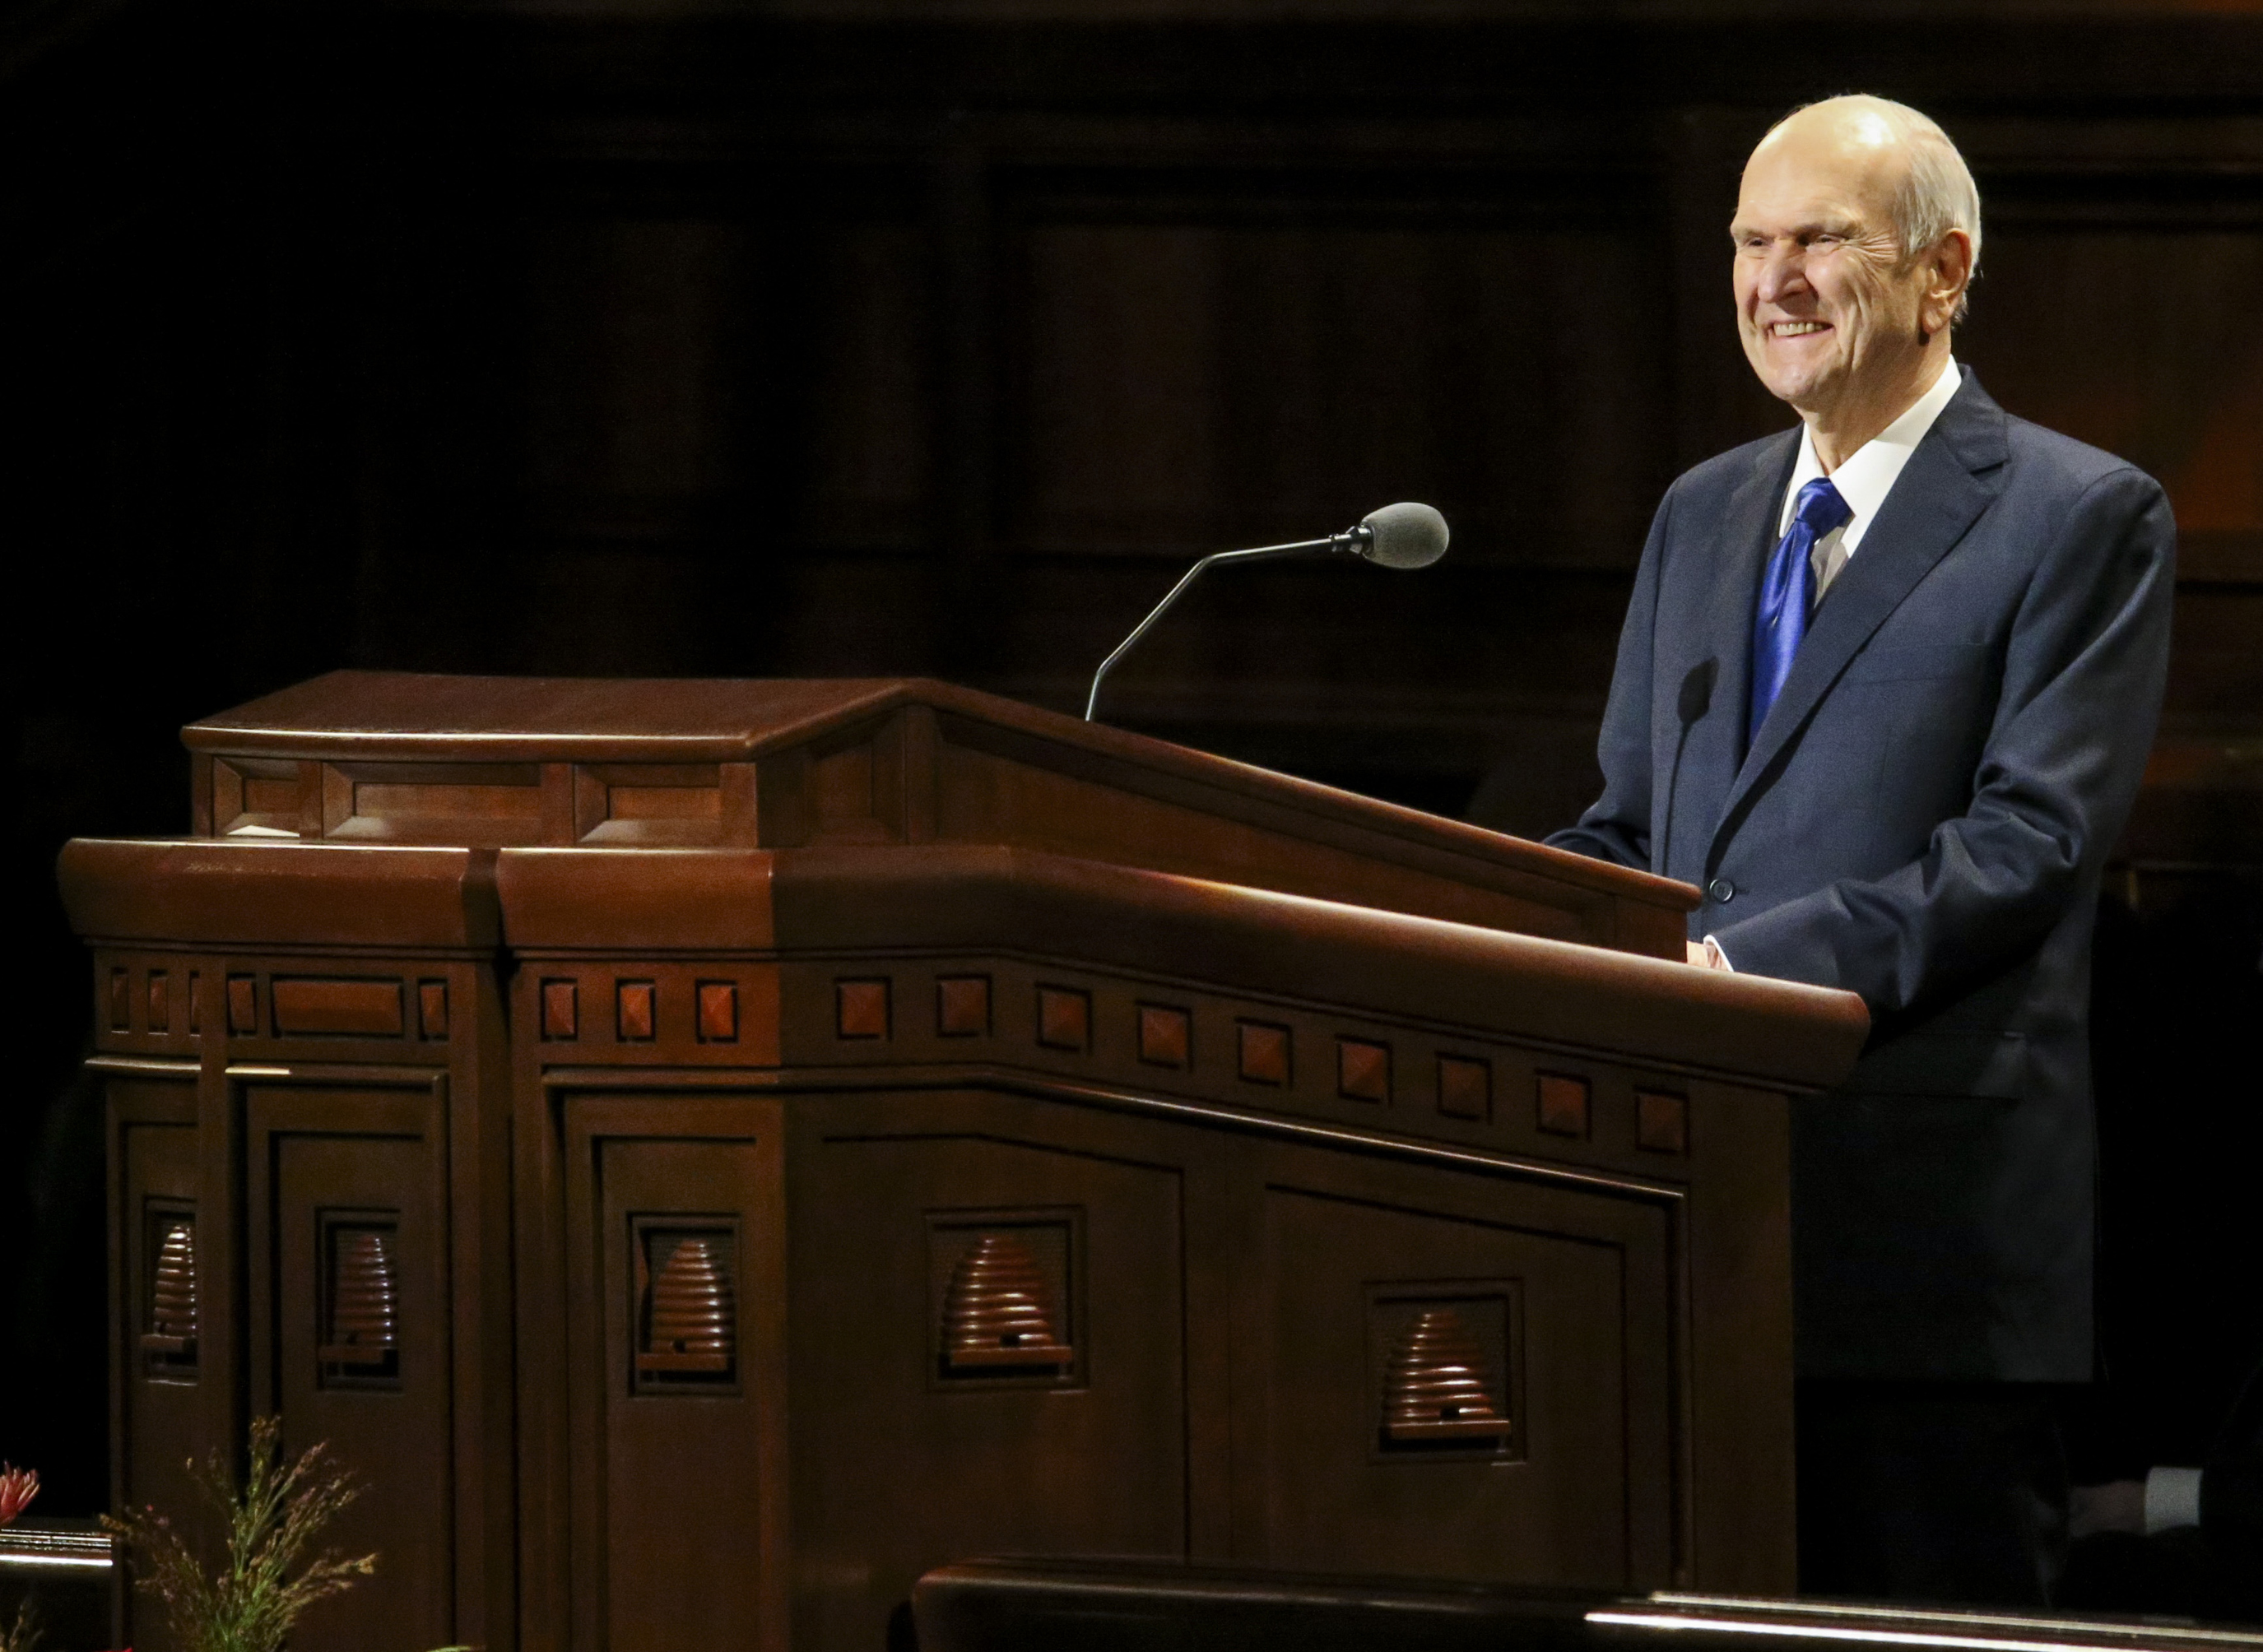 President Russell M. Nelson speaks during the women's session of the 189th Semiannual General Conference of The Church of Jesus Christ of Latter-day Saints at the Conference Center in Salt Lake City on Saturday, Oct. 5, 2019.